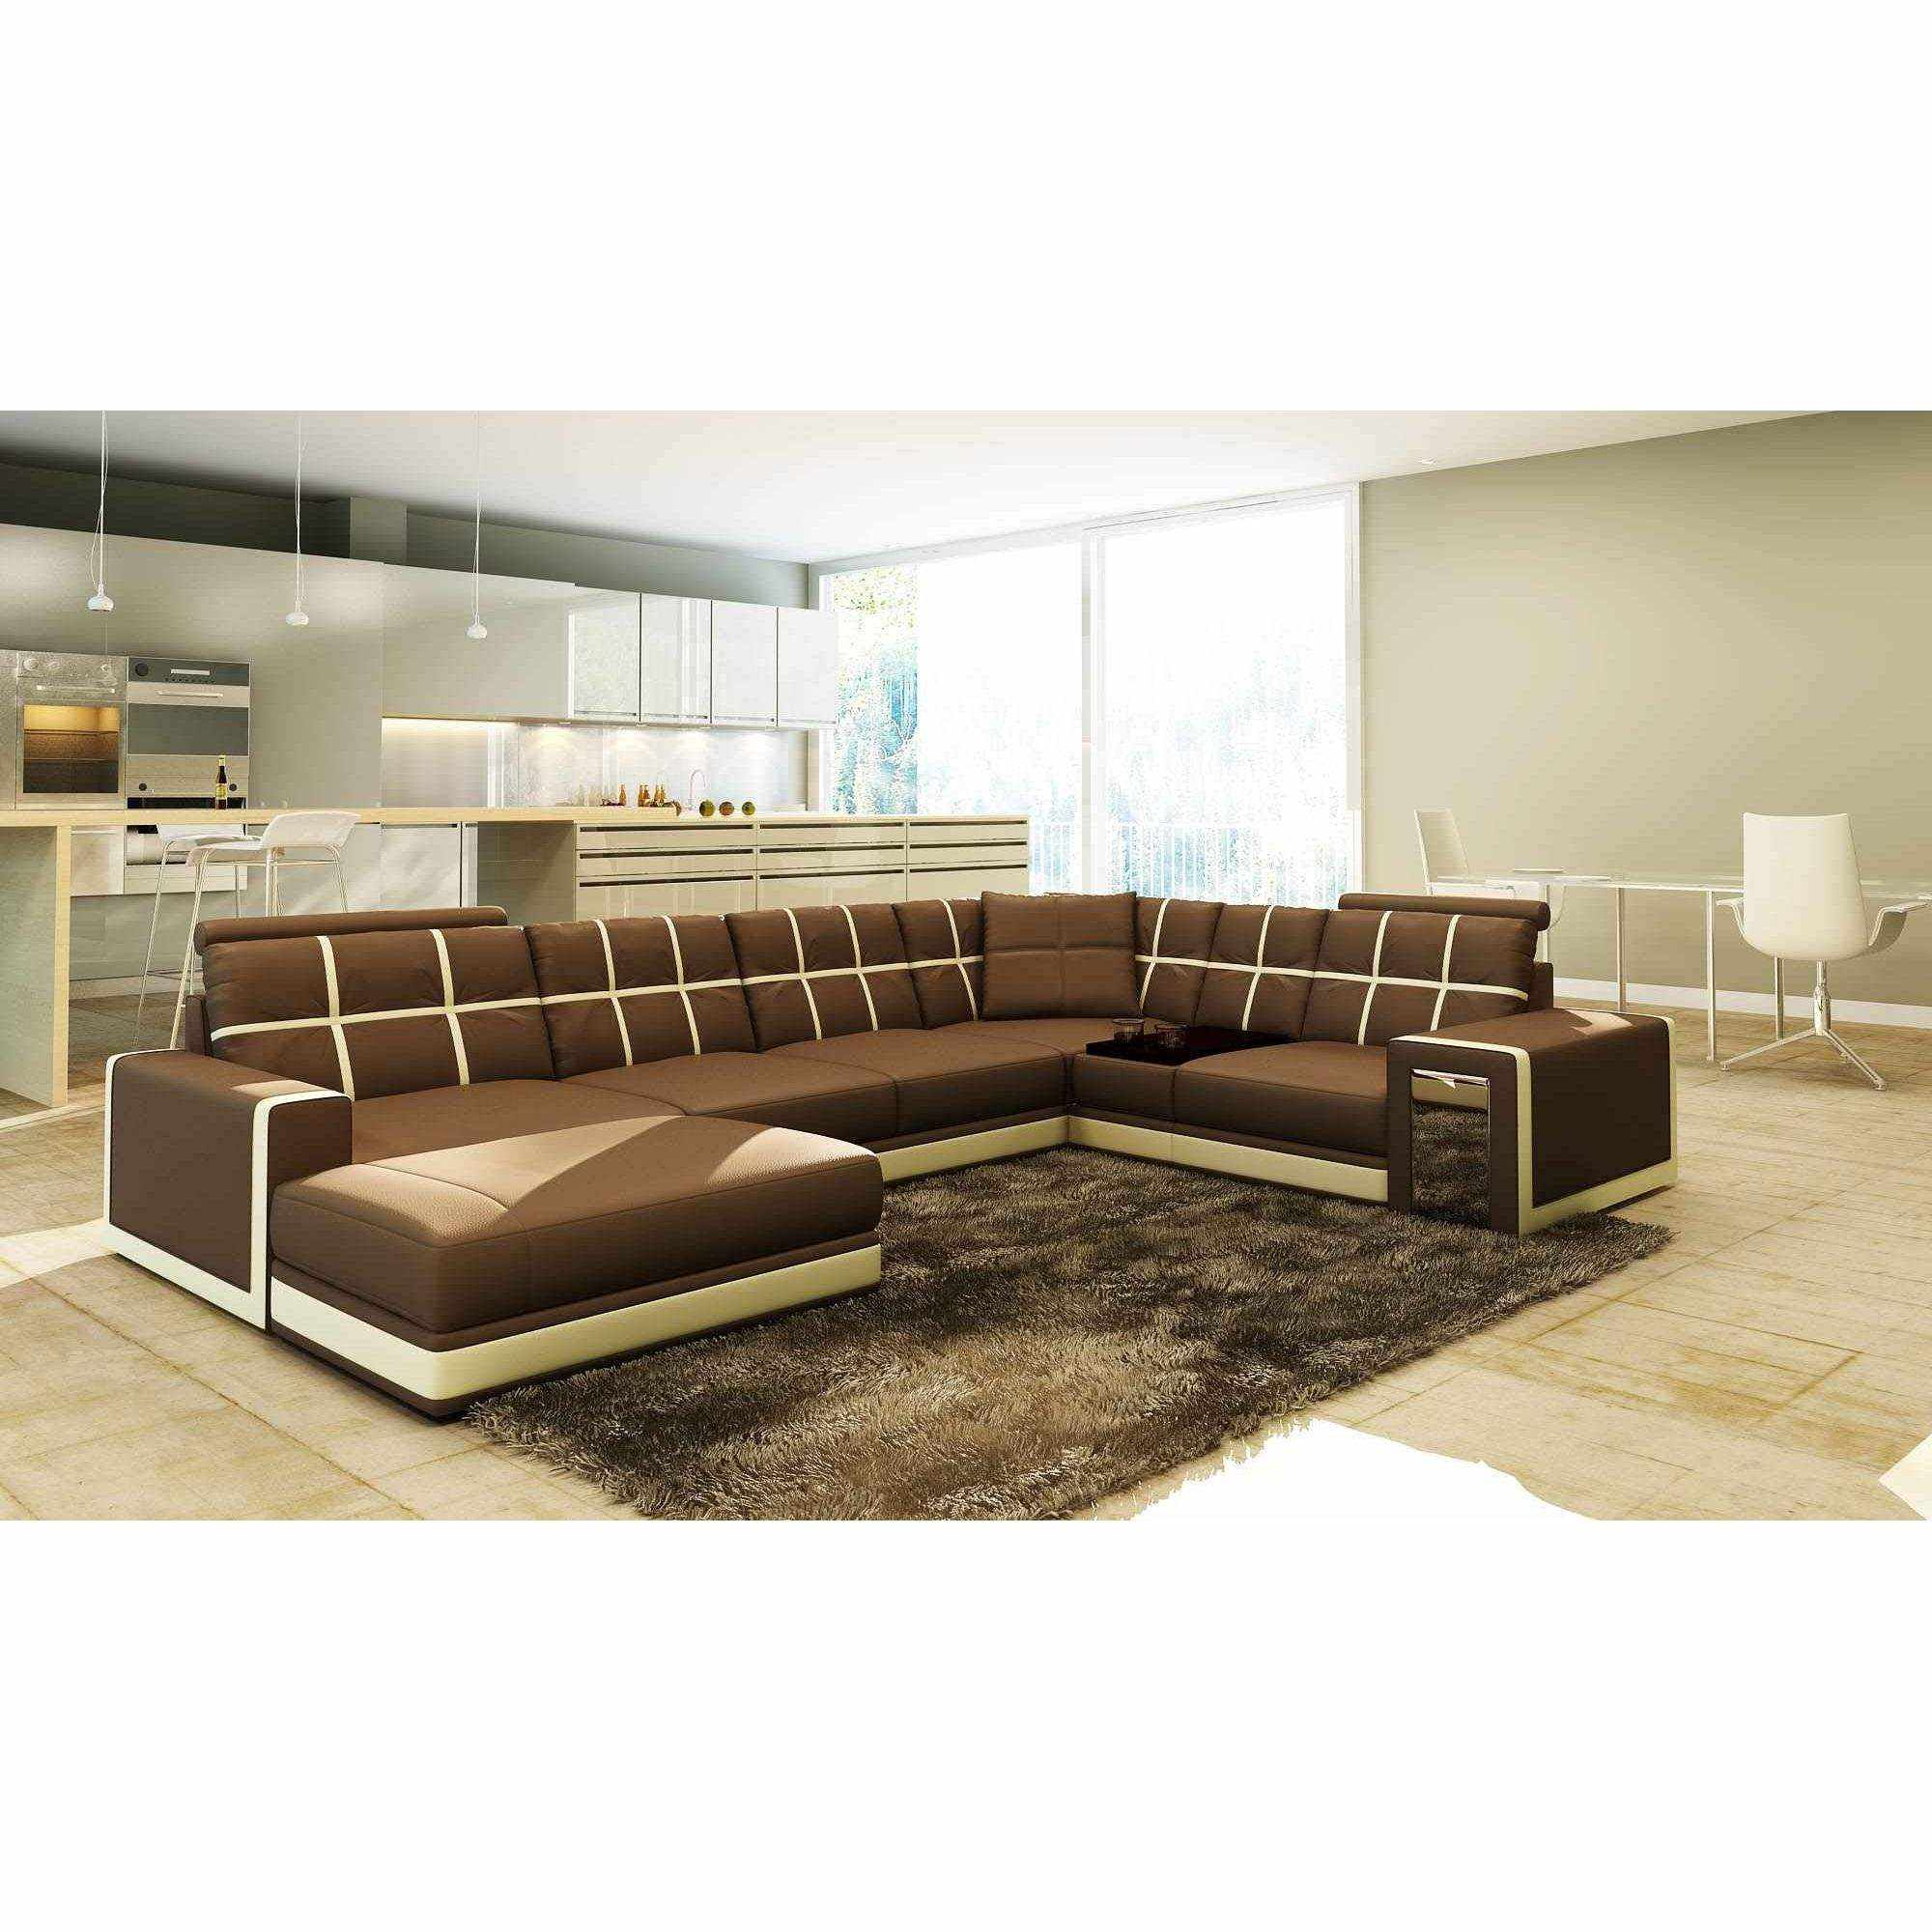 Deco in paris canape d angle panoramique cuir marron et beige design electr - Salon d angle design ...